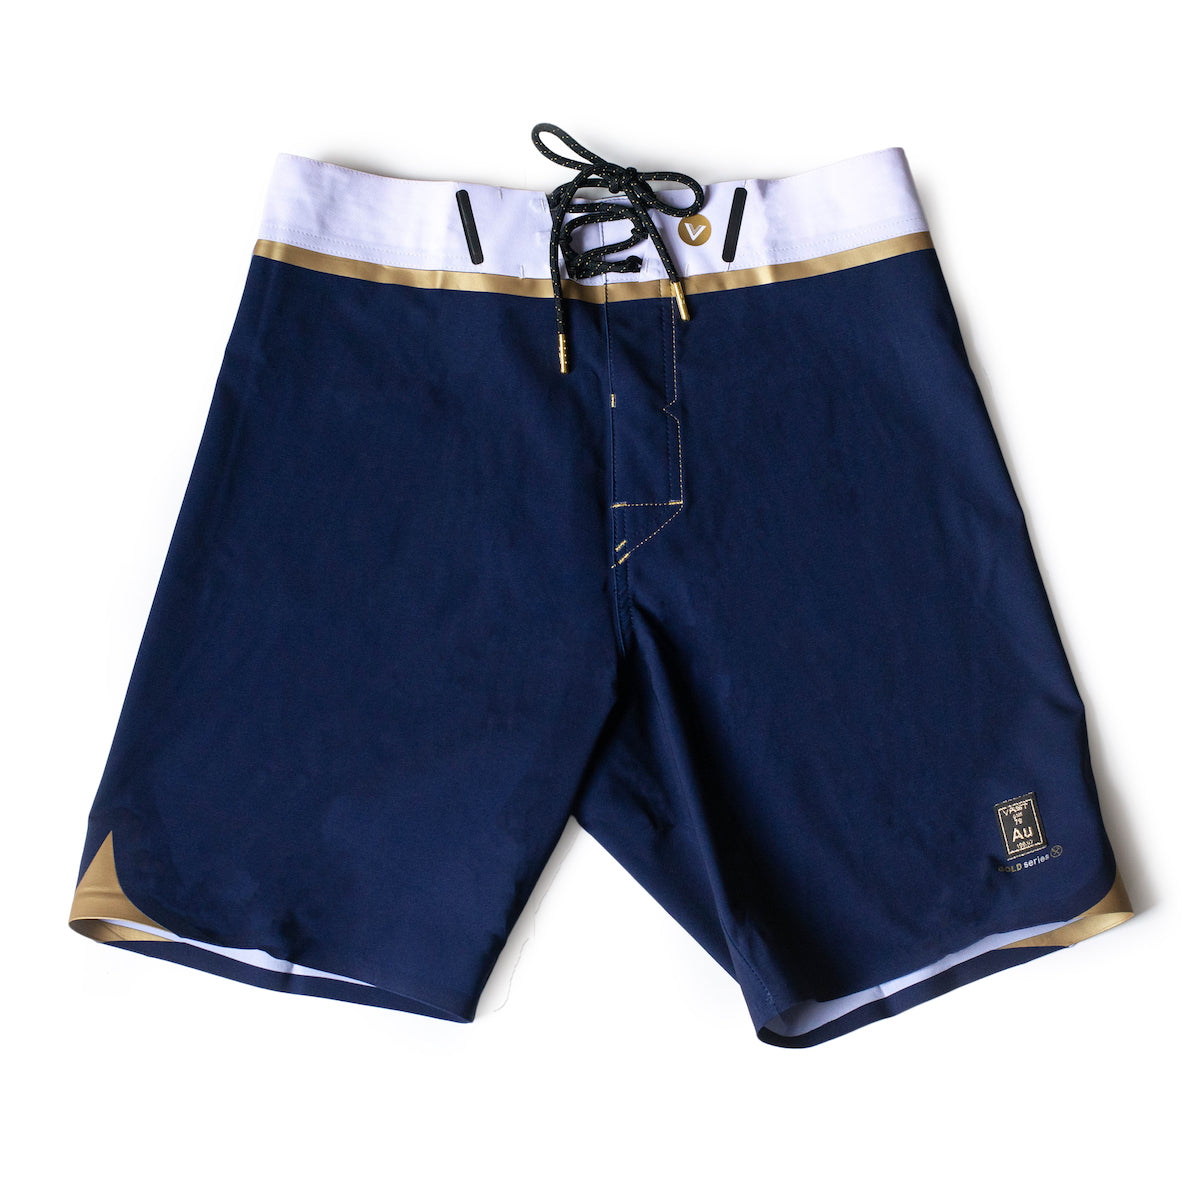 VAST - SNOCAP (NAVY) - SURFSHORTS